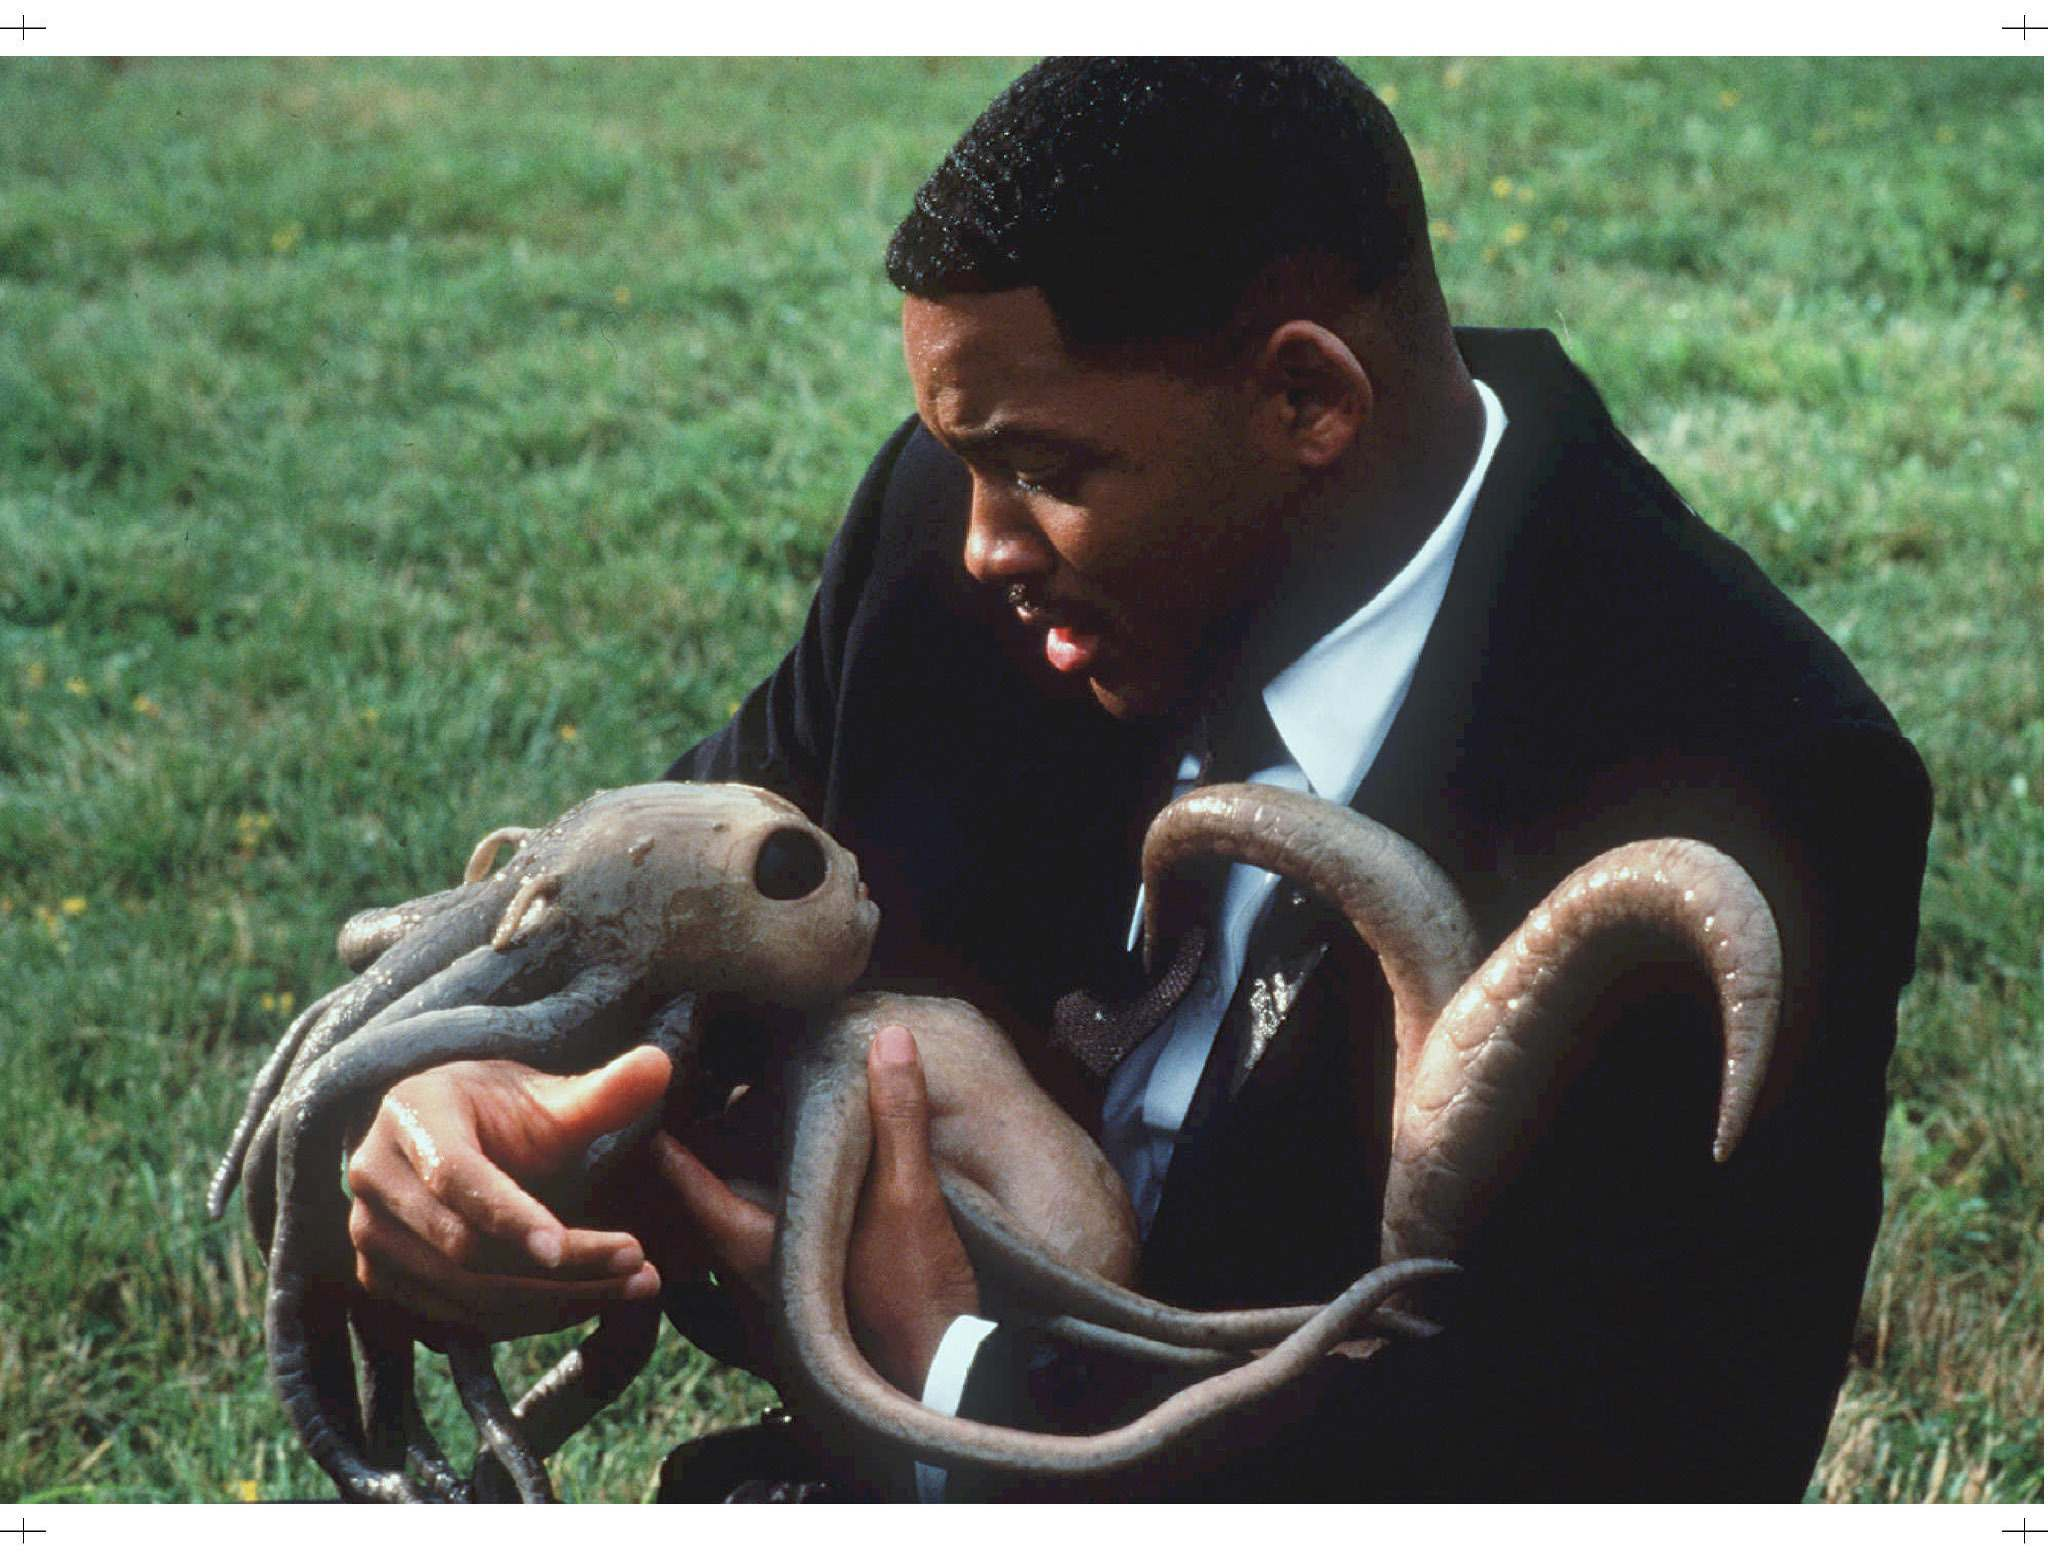 SUPPLIED</p><p>Will Smith holds a newborn alien in a scene from Men in Black.</p>